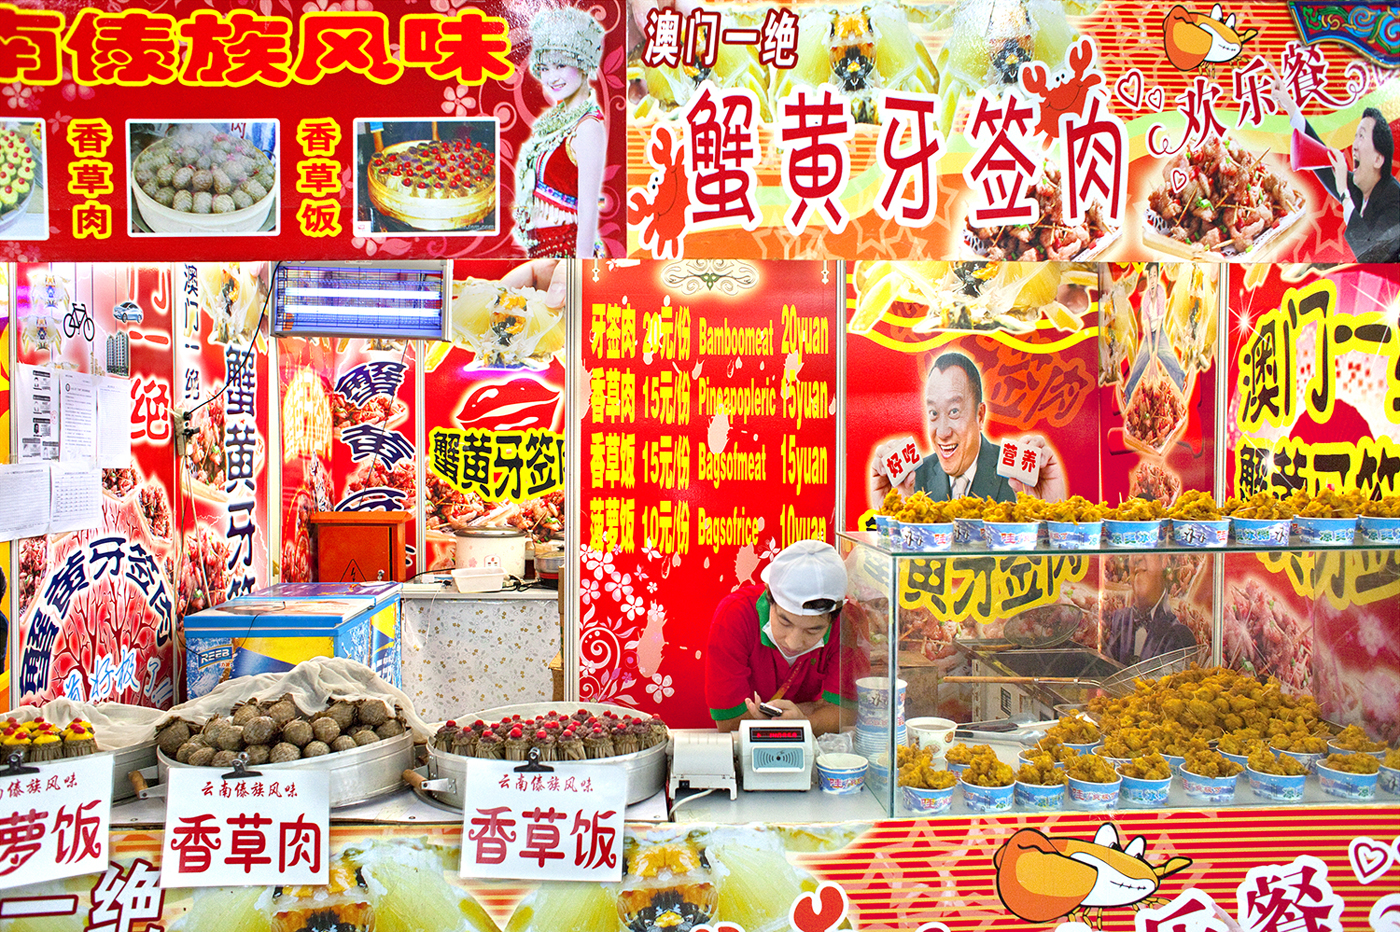 Hitzenberger_Chinese_Fast_Food_01.jpg